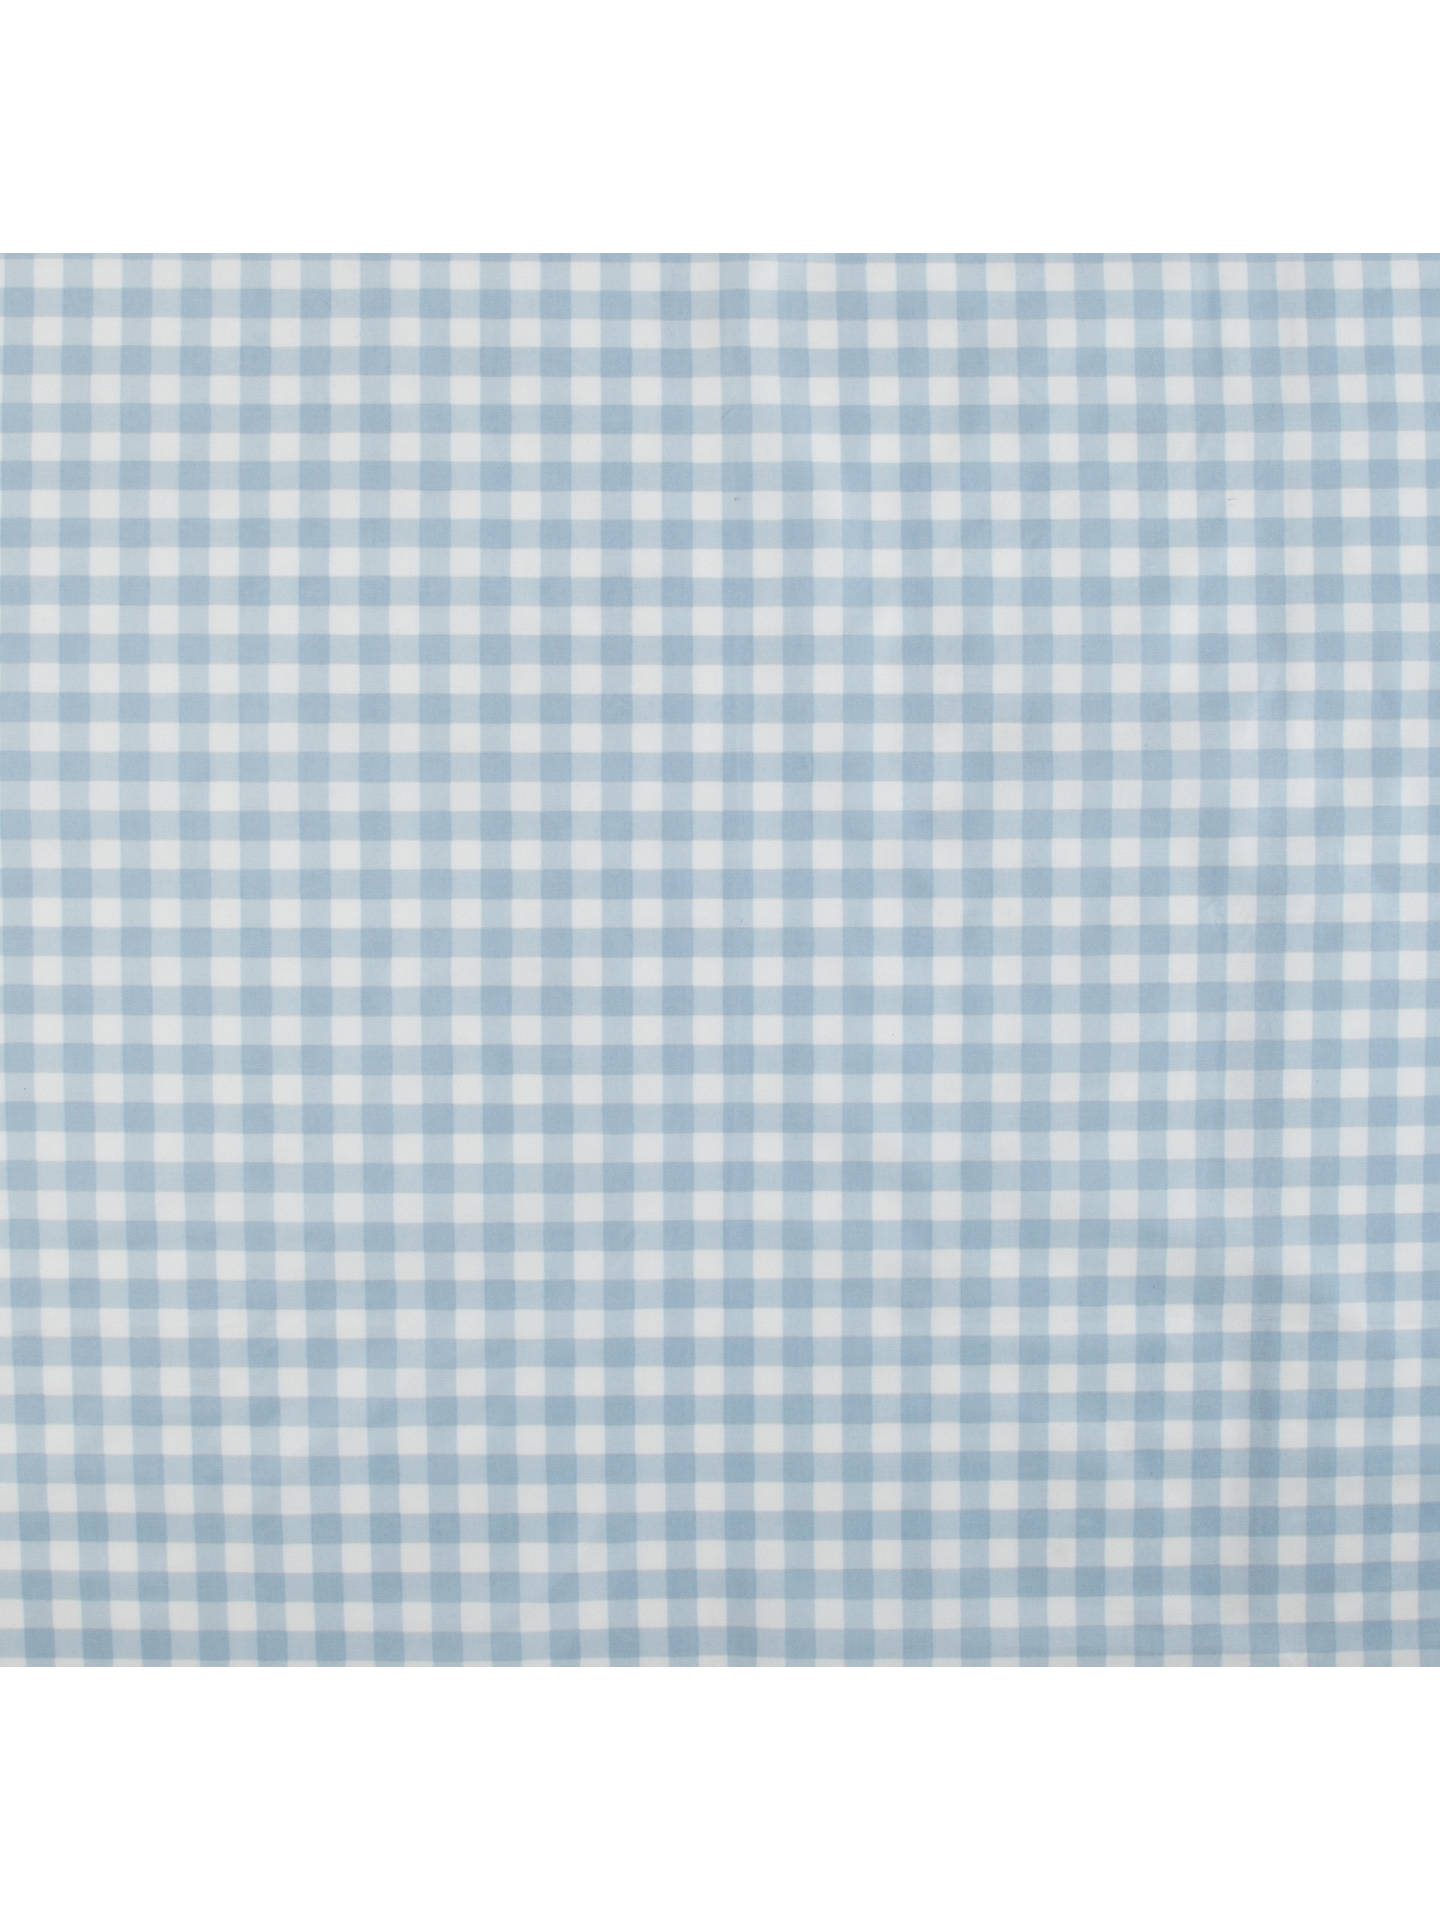 BuyJohn Lewis New Gingham Check PVC Tablecloth Fabric, Blue Online At  Johnlewis.com ...